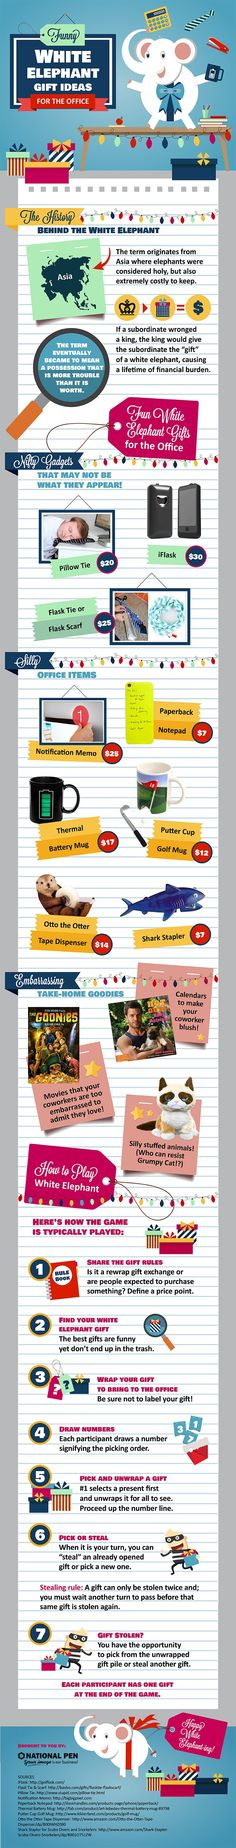 Funniest White Elephant Gift Ideas for Coworkers [Infographic]